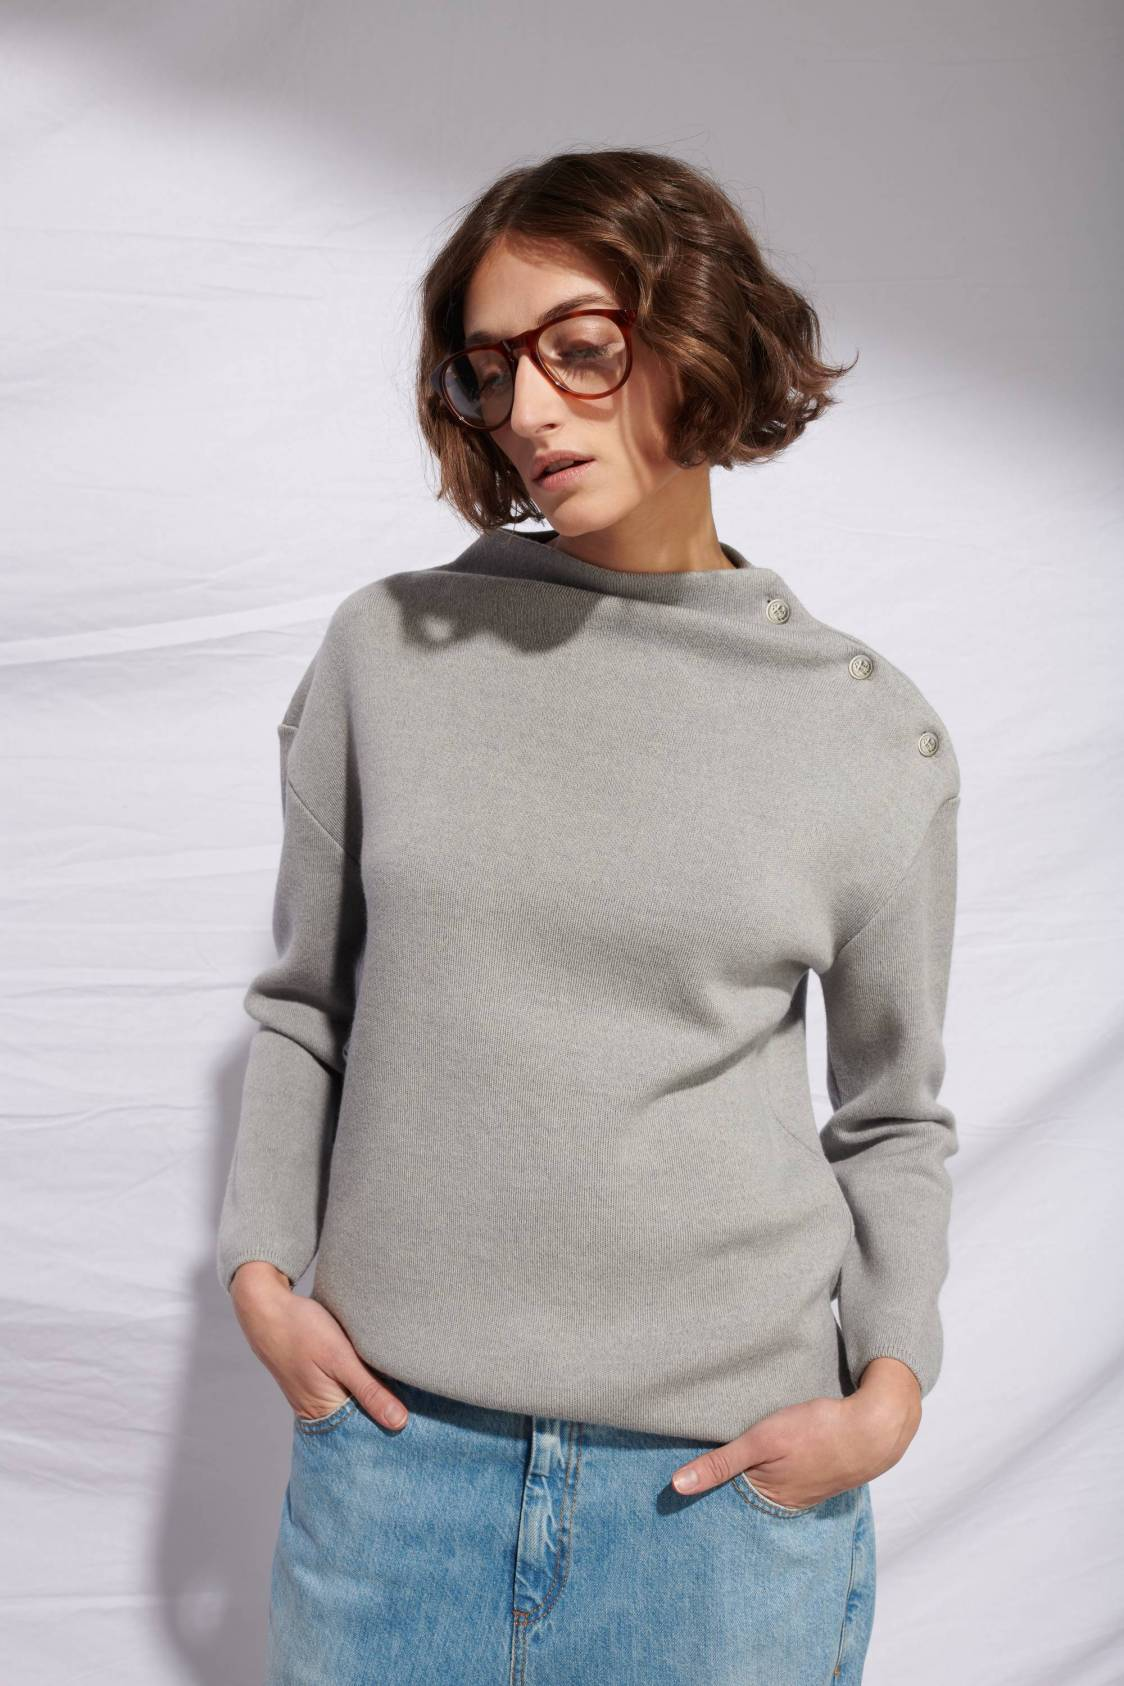 Boat Mock-turtleneck Sweater